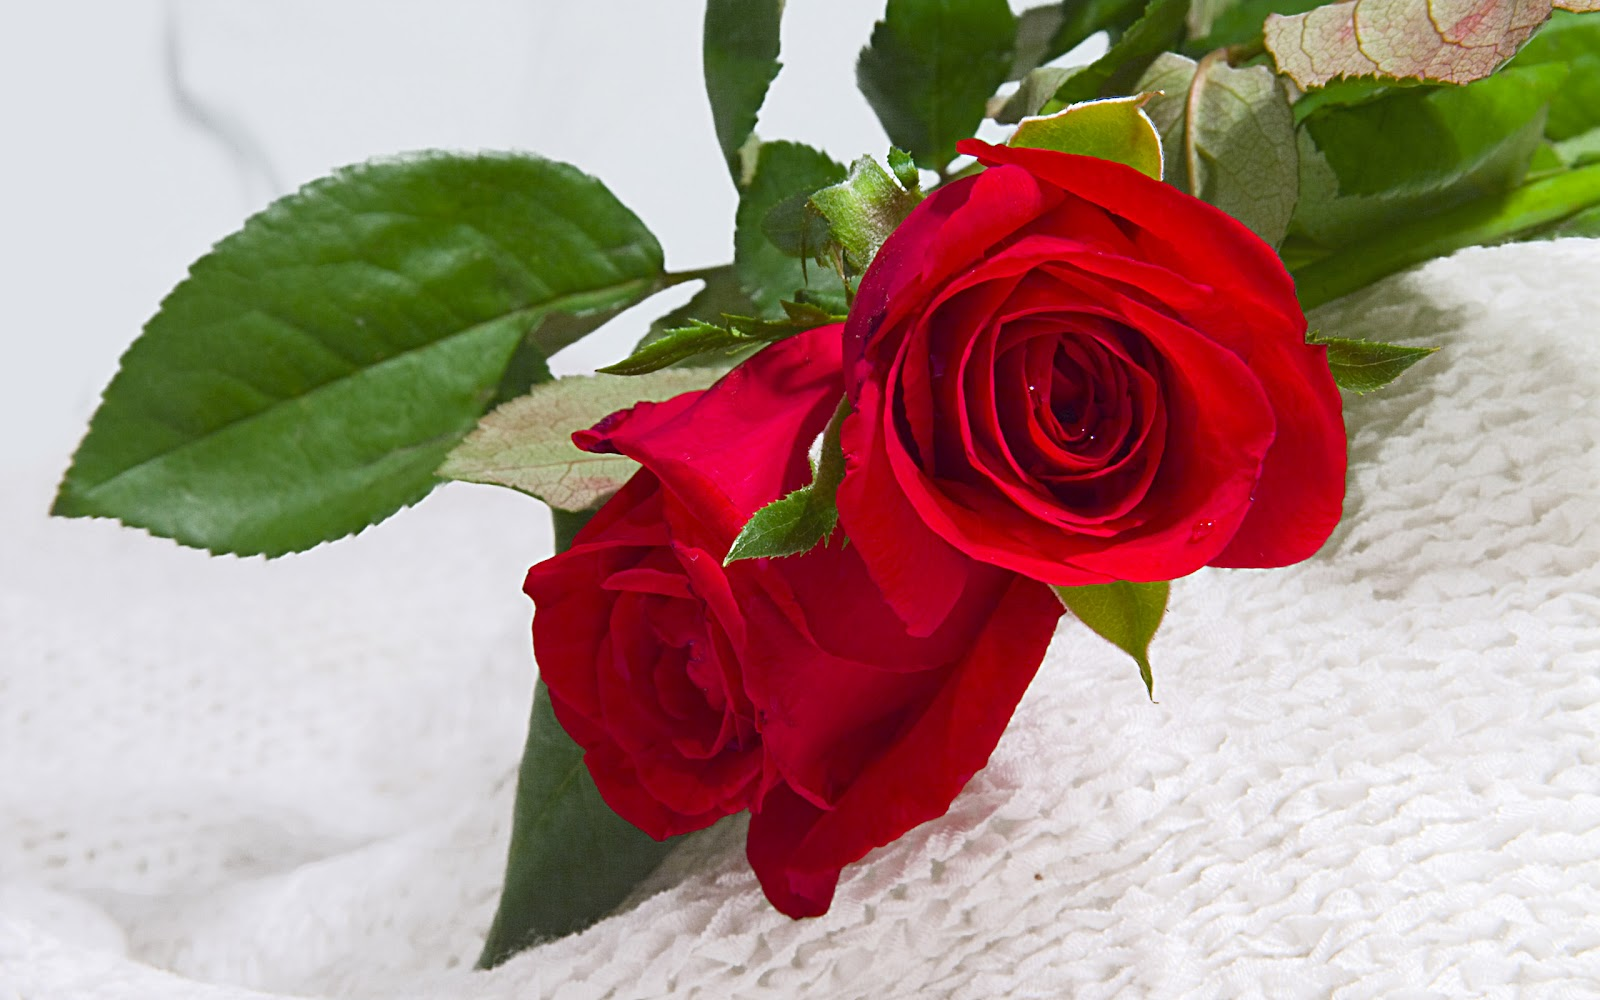 hd red rose wallpaper|free red roses hd wallpapers|beautiful roses